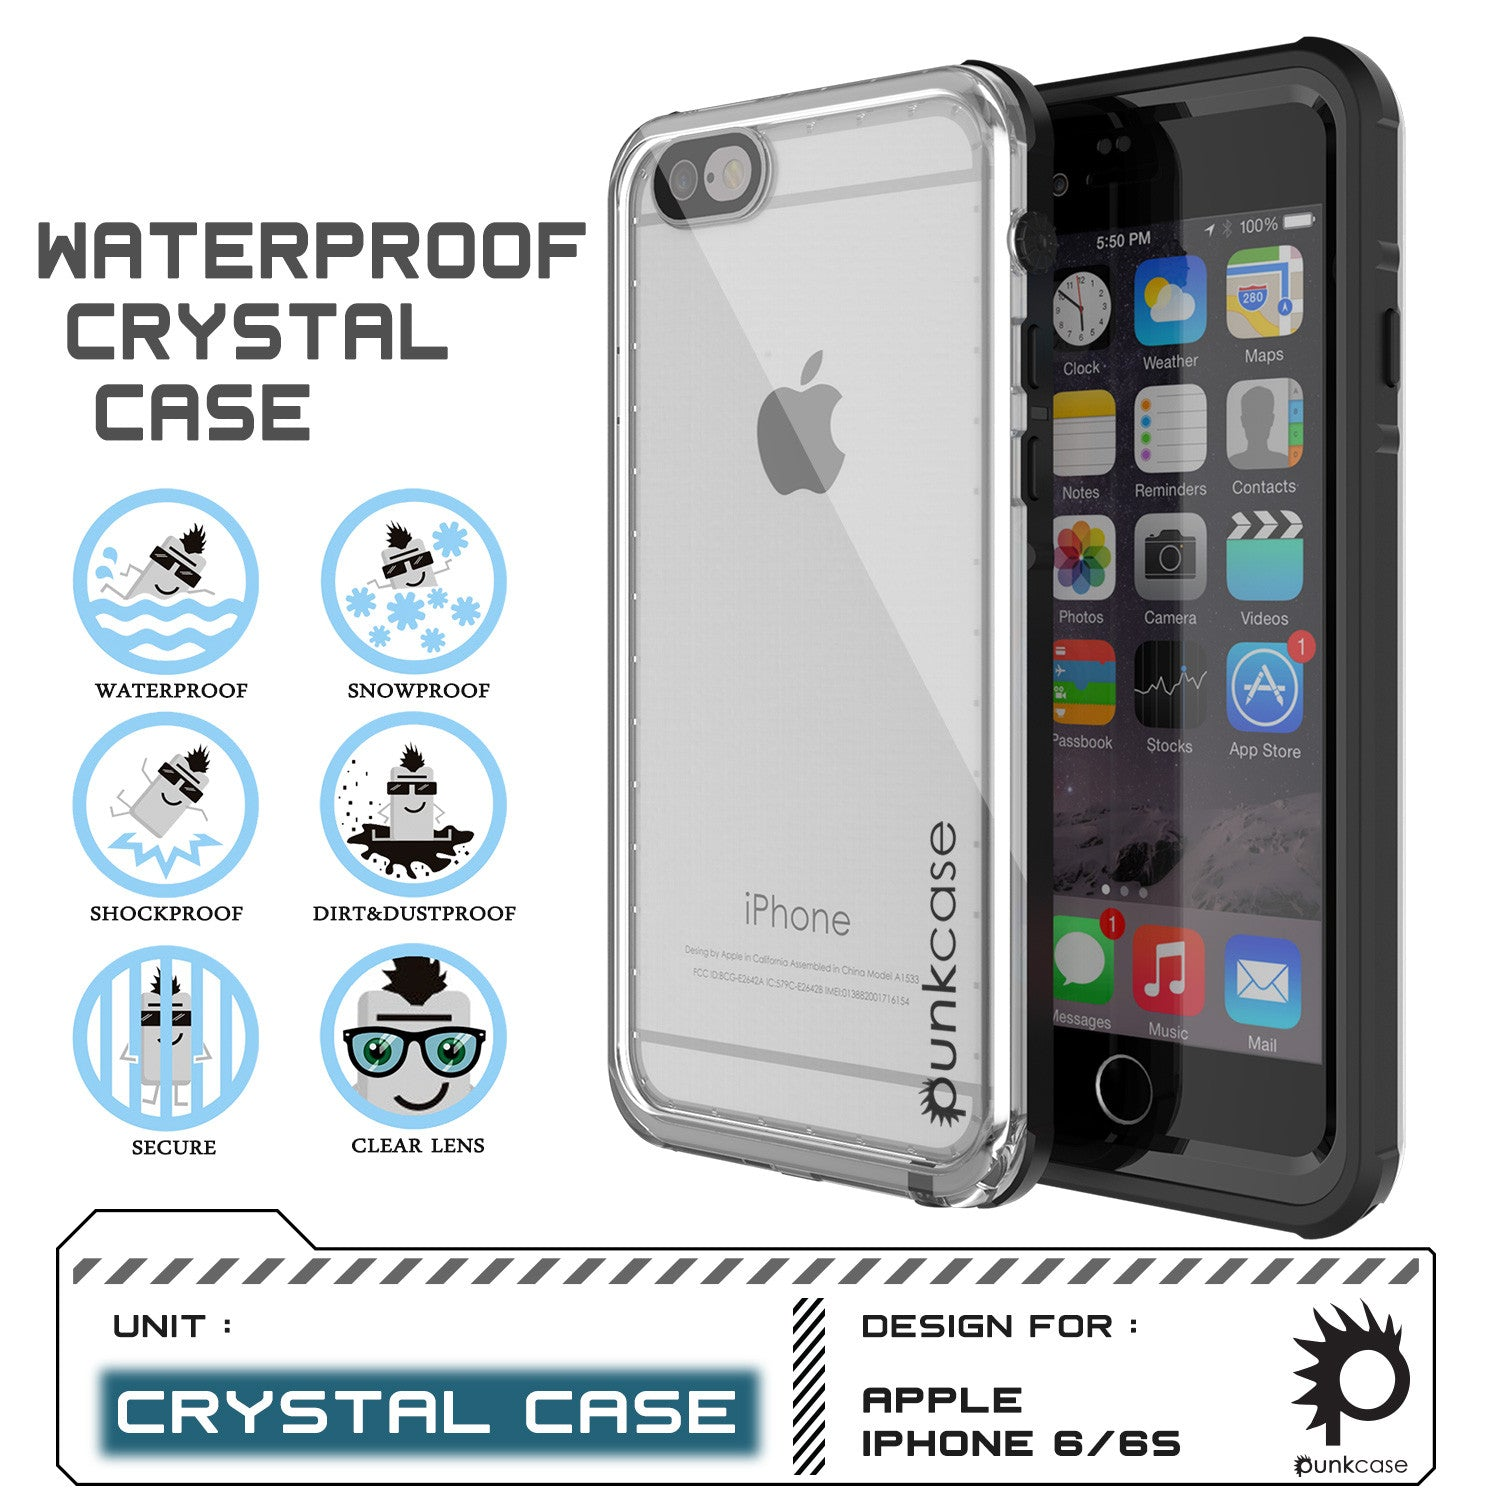 iPhone 6/6S Waterproof Case, PUNKcase CRYSTAL Black W/ Attached Screen Protector  | Warranty